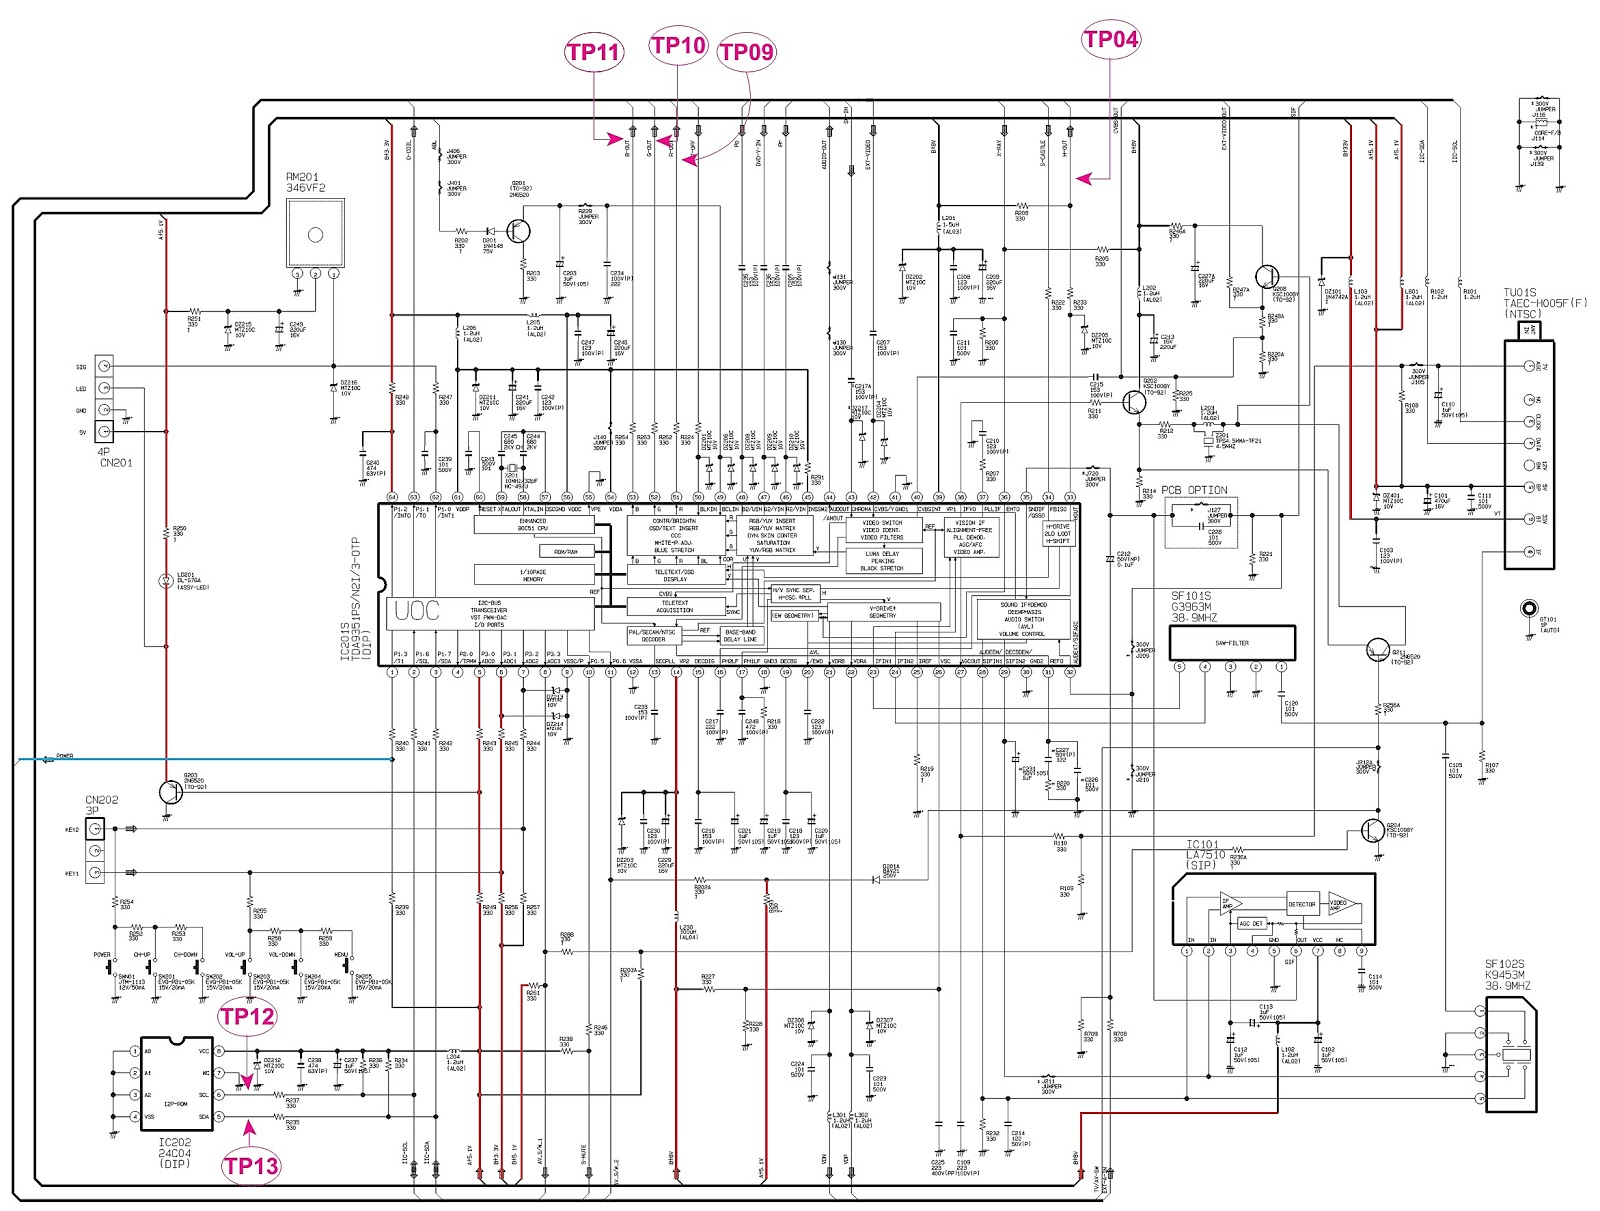 Samsung Cl21k40 - Crt Tv - Service Mode - Circuit Diagram